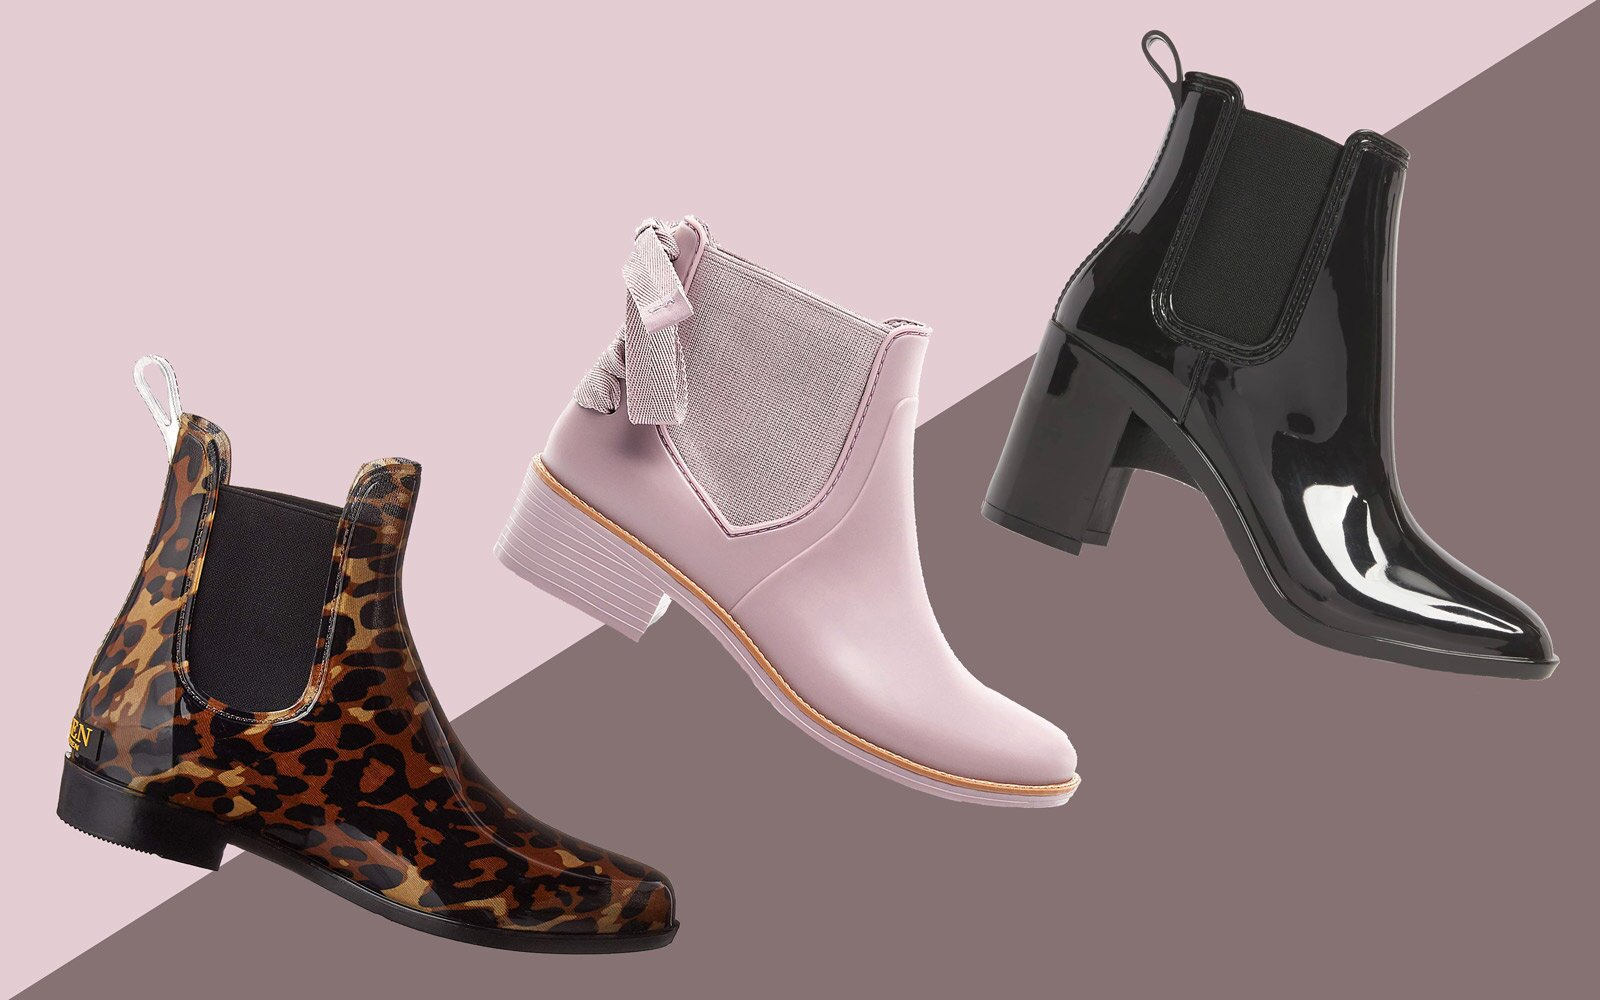 744aed66aa70 9 Rain Boots That Are Genuinely Cute